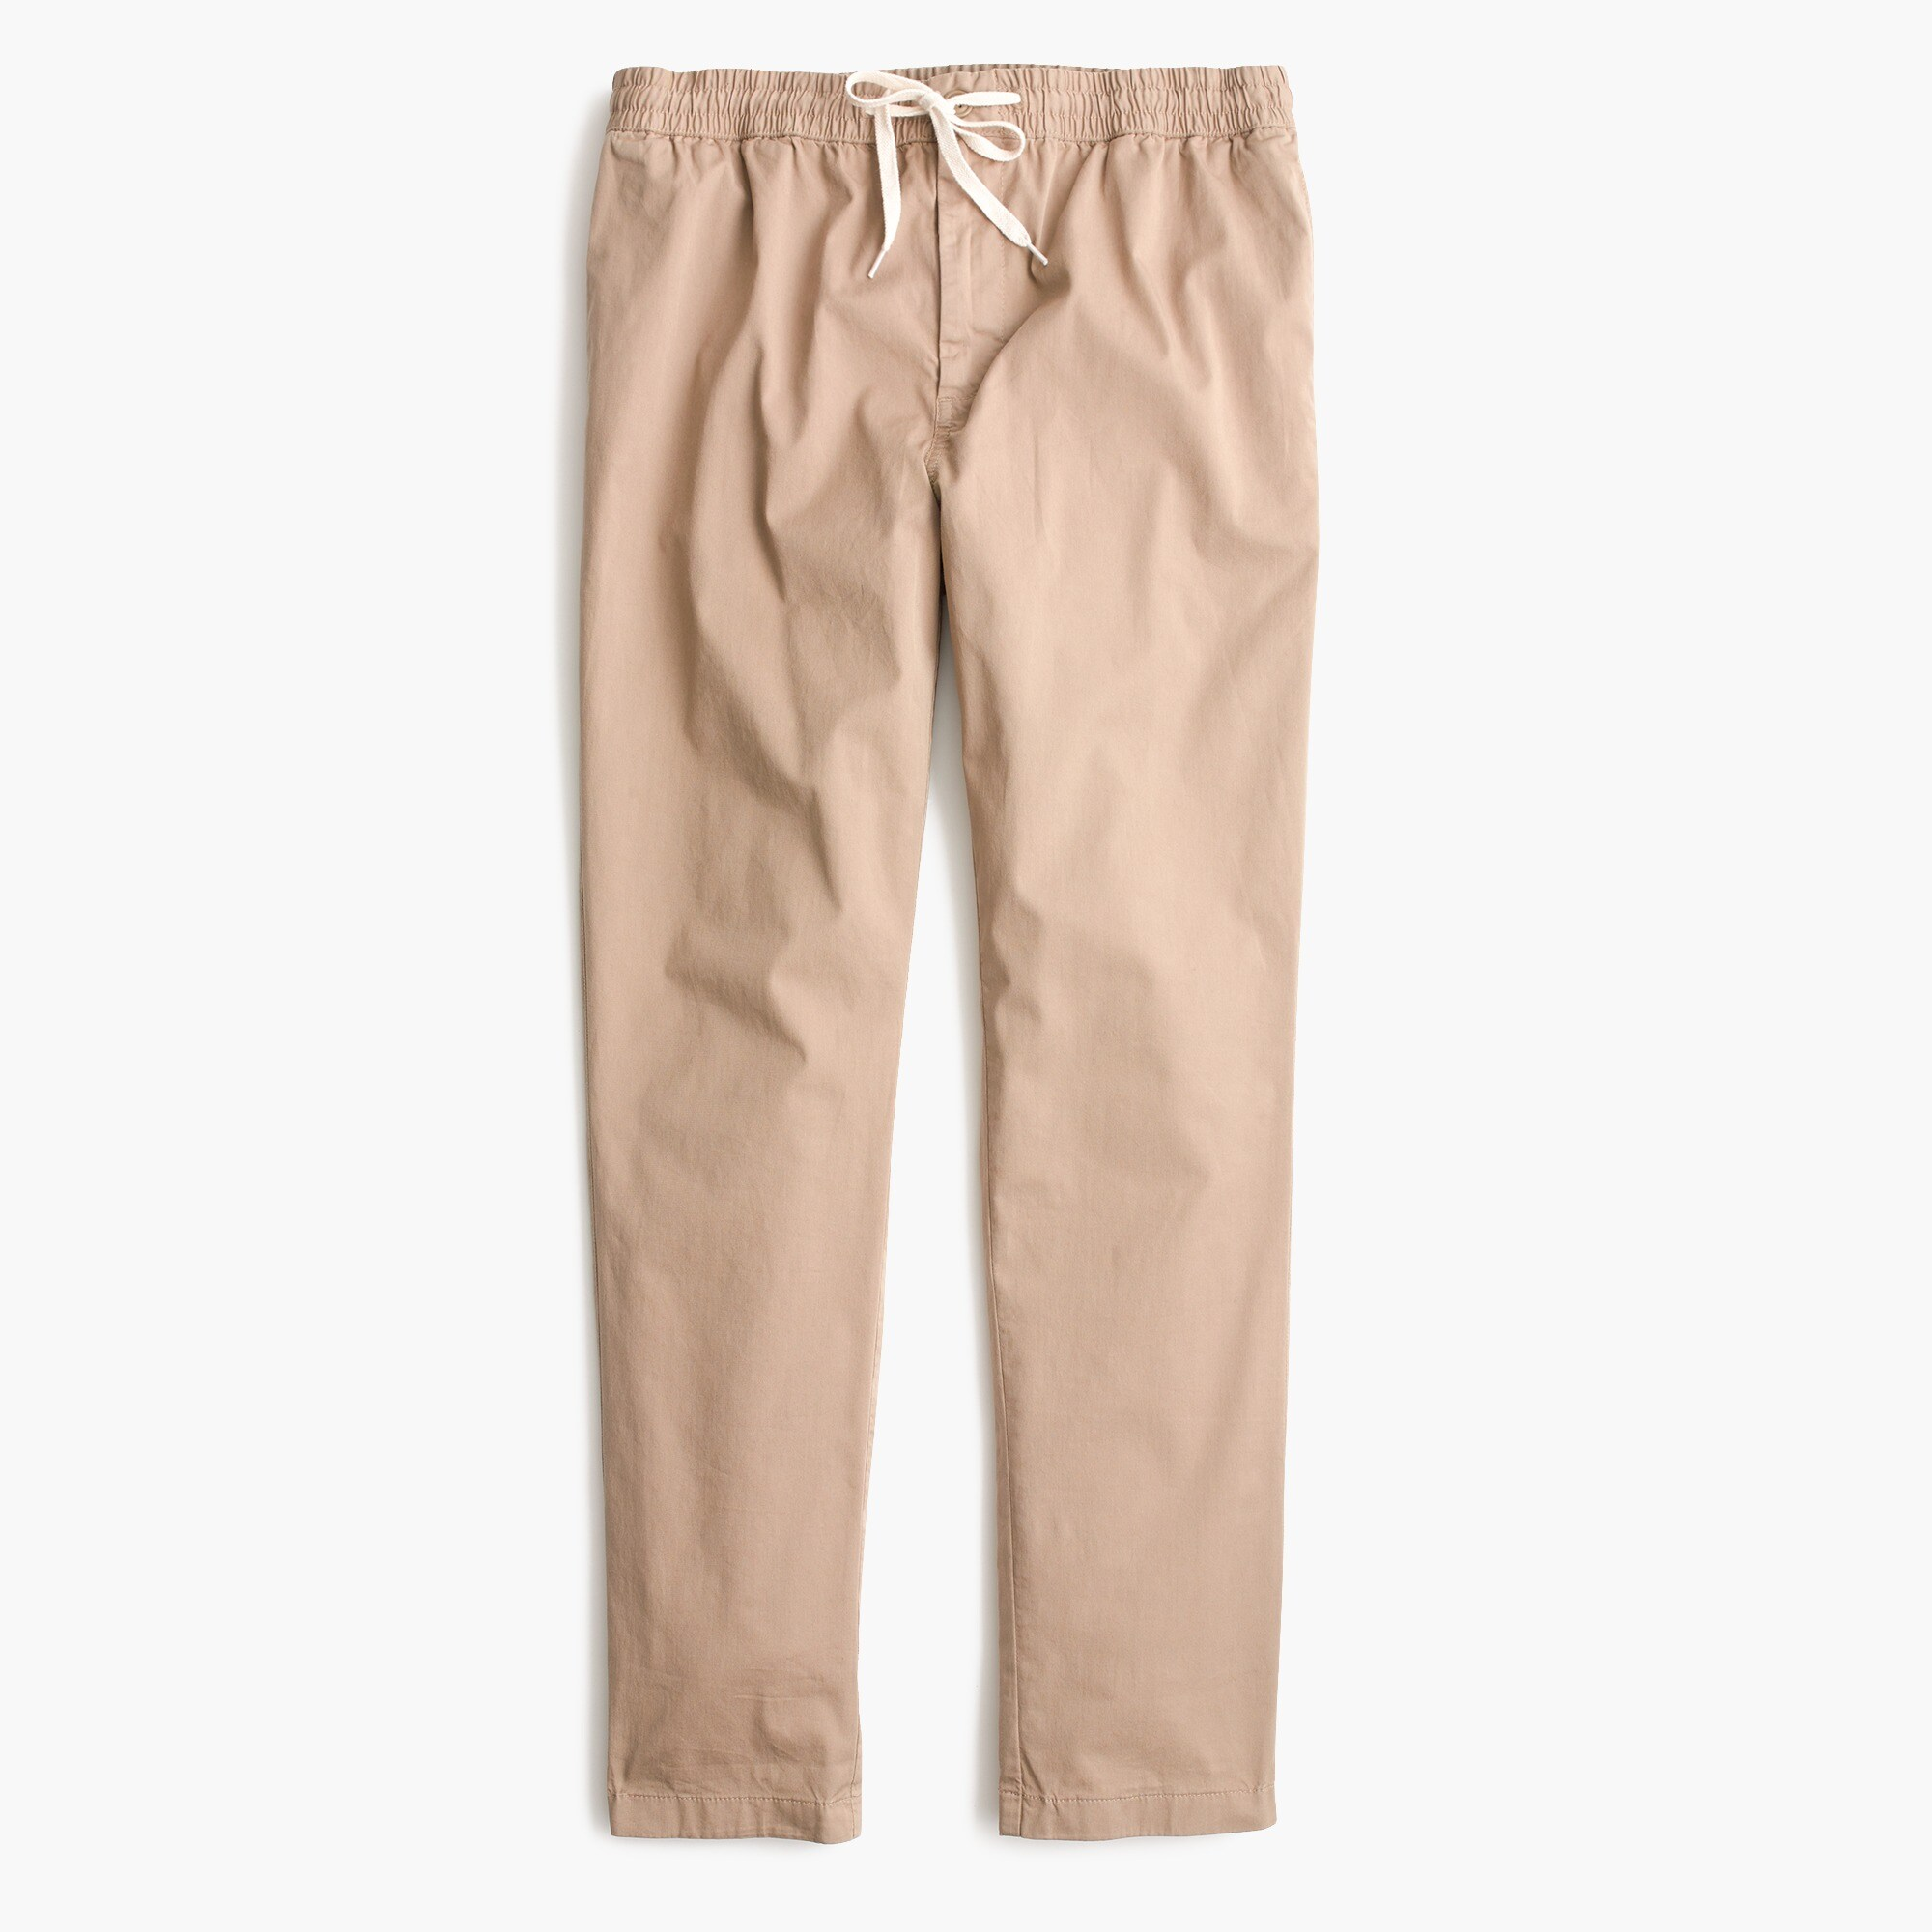 Drawstring pant in chino